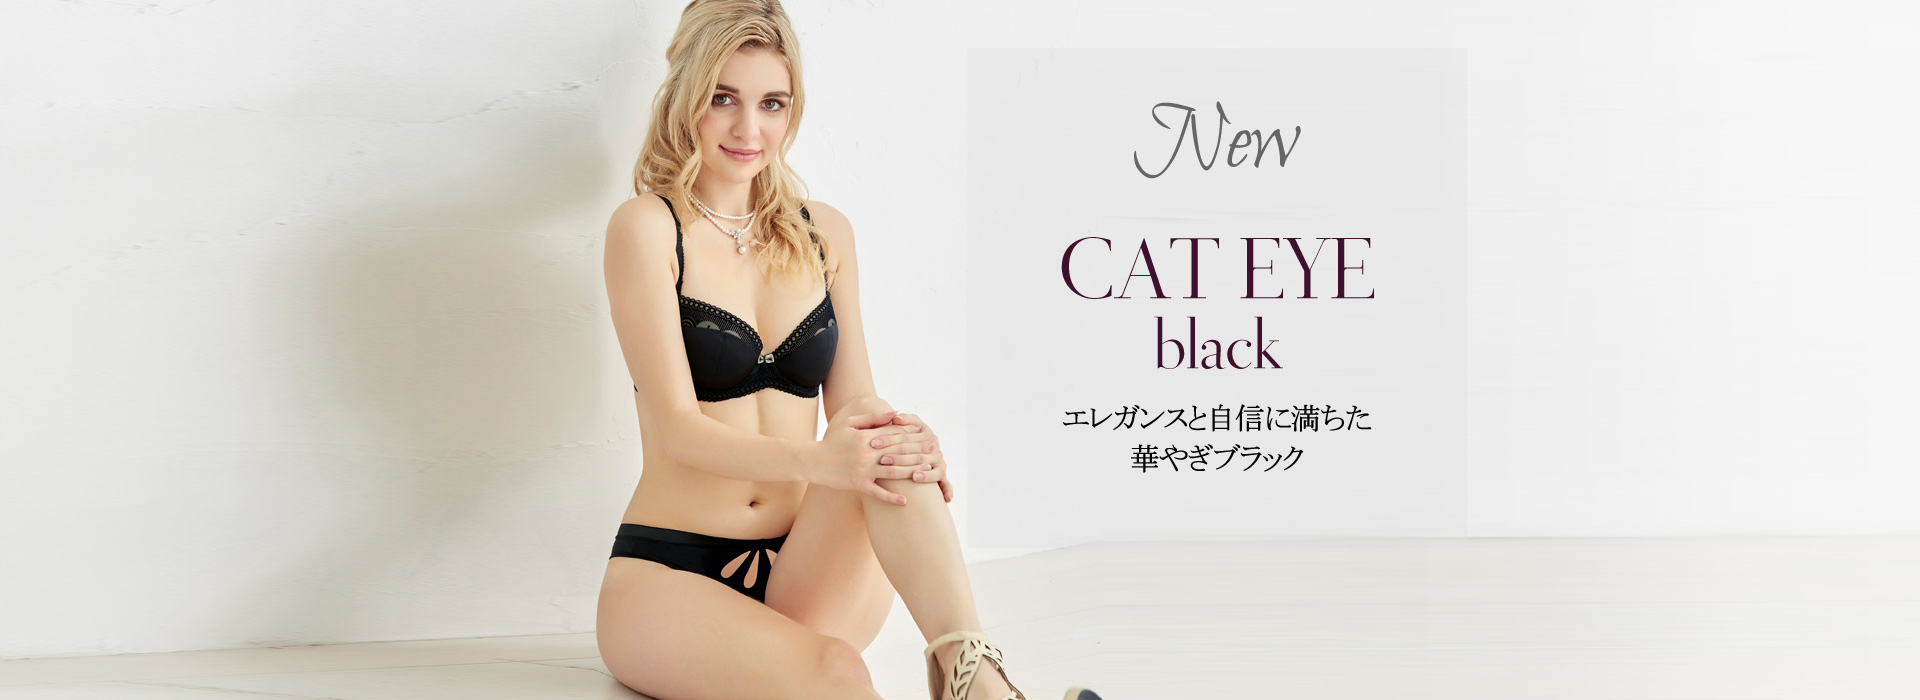 サブレン CAT EYE Series -2018AW-